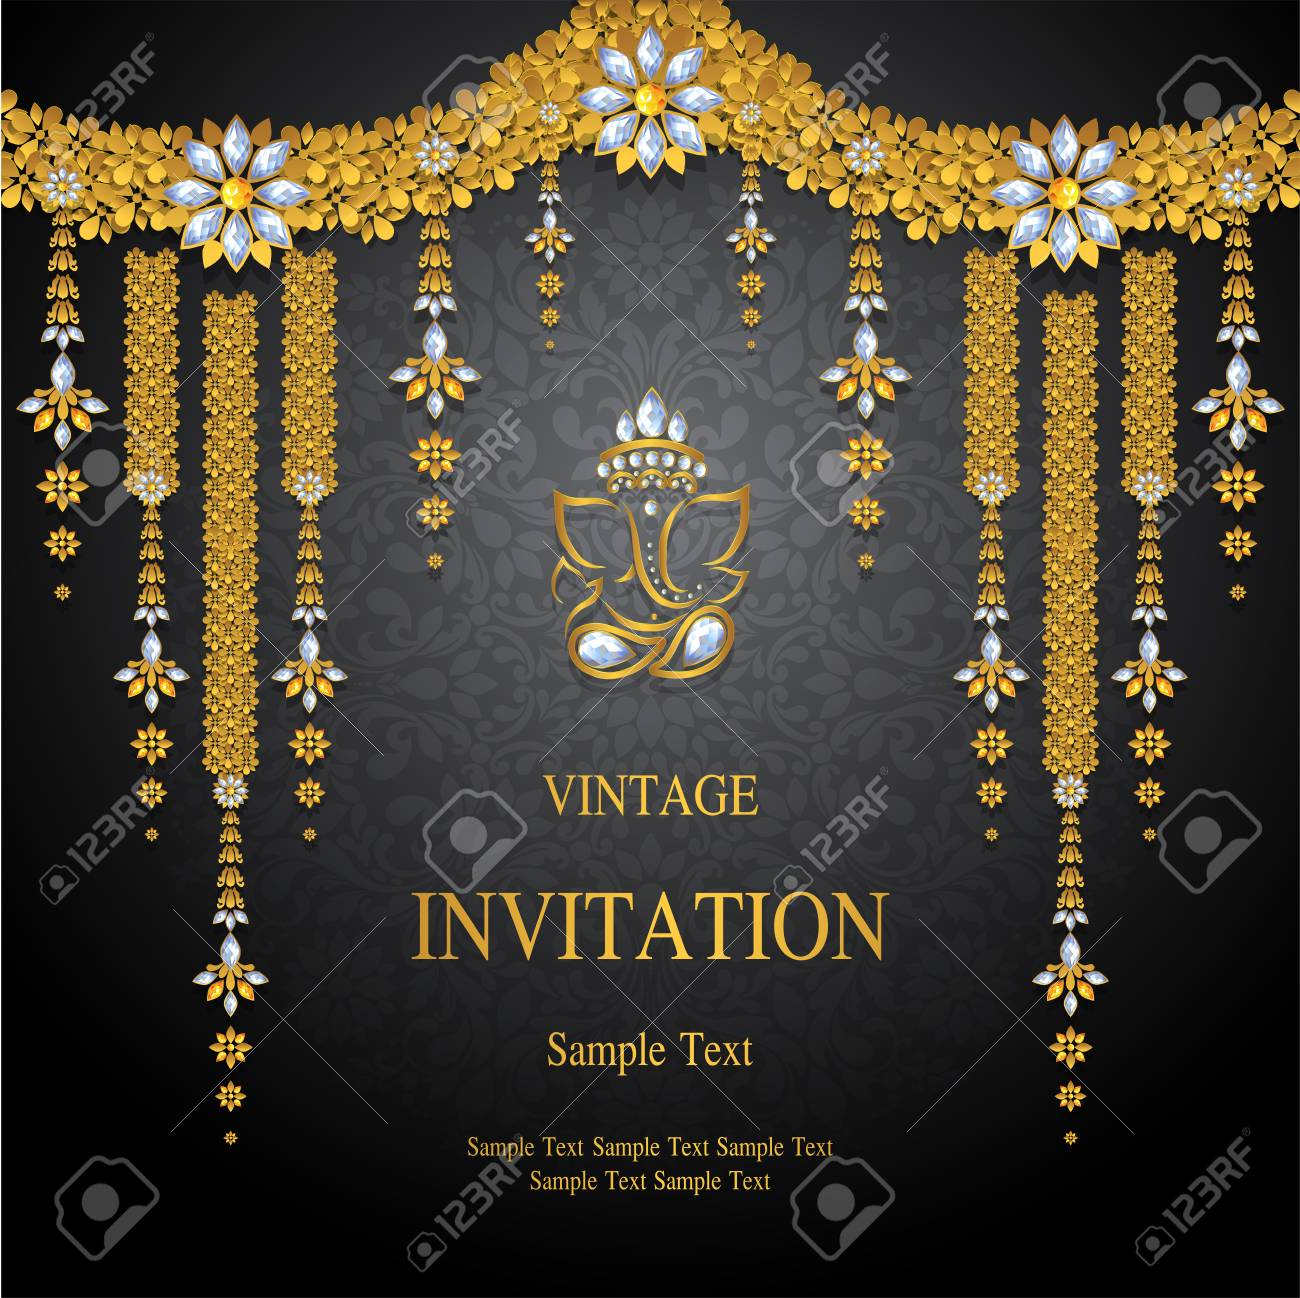 Wedding Invitation card templates with gold patterned and crystals on background color. - 89111522